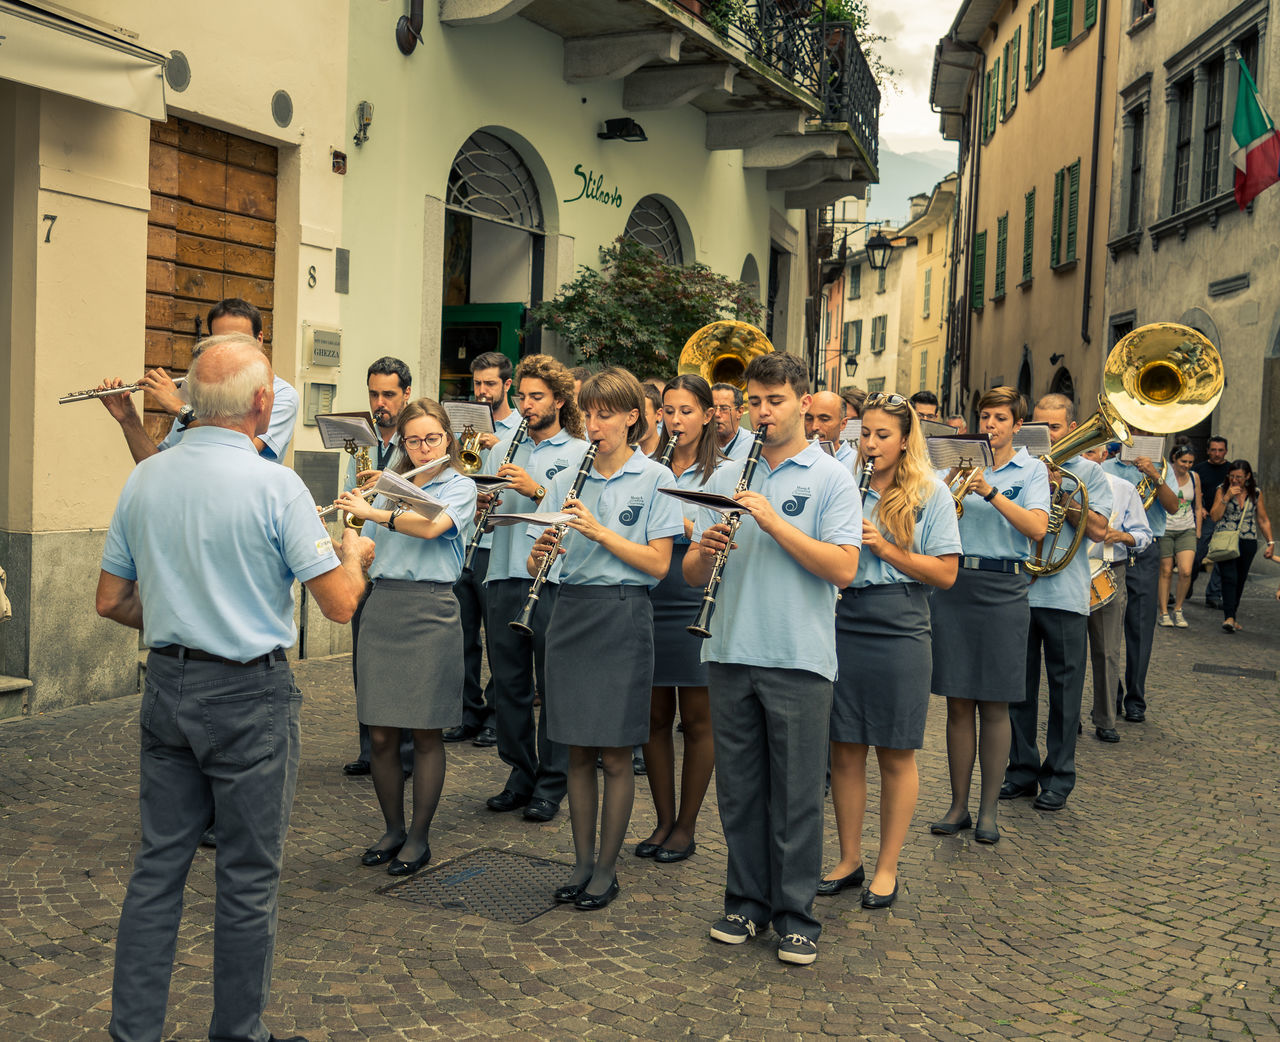 Architecture Arts Culture And Entertainment Chiavenna Instruments Italia Italy Large Group Of People Music Musical Instrument Old Town Orchestra Outdoors Parade Performance Group Playing Saxophone Streetphotography TakeoverMusic Togetherness Uniform